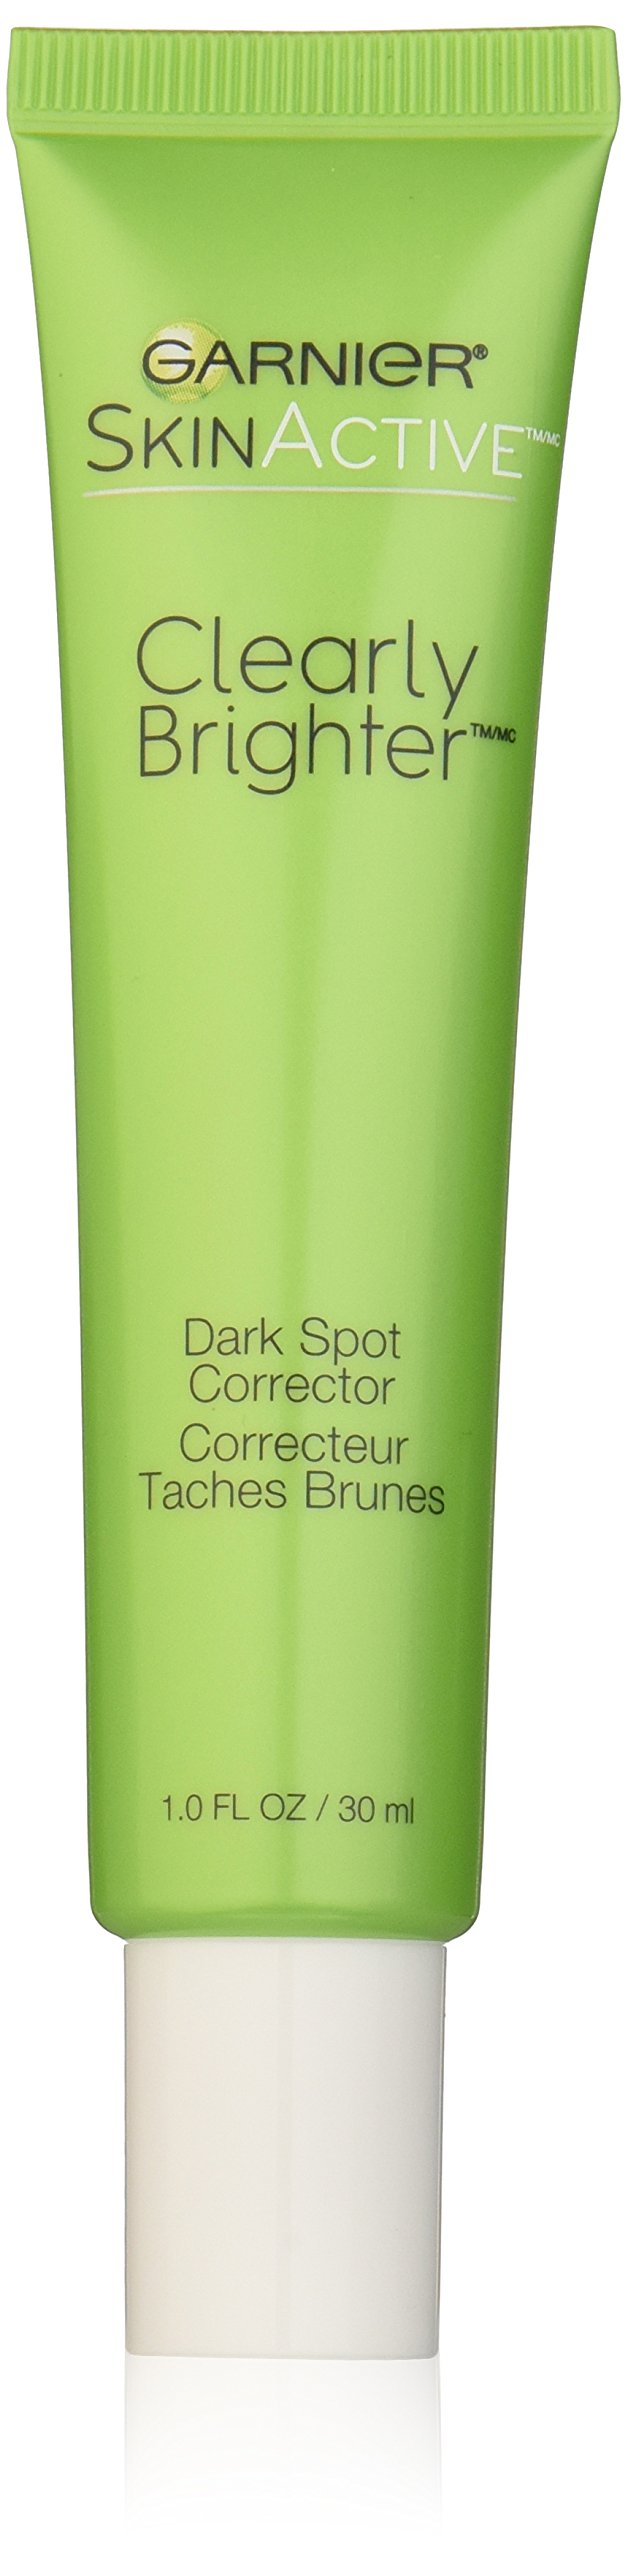 Amazon.com: Garnier SkinActive Clearly Brighter Daily Moisturizer ...